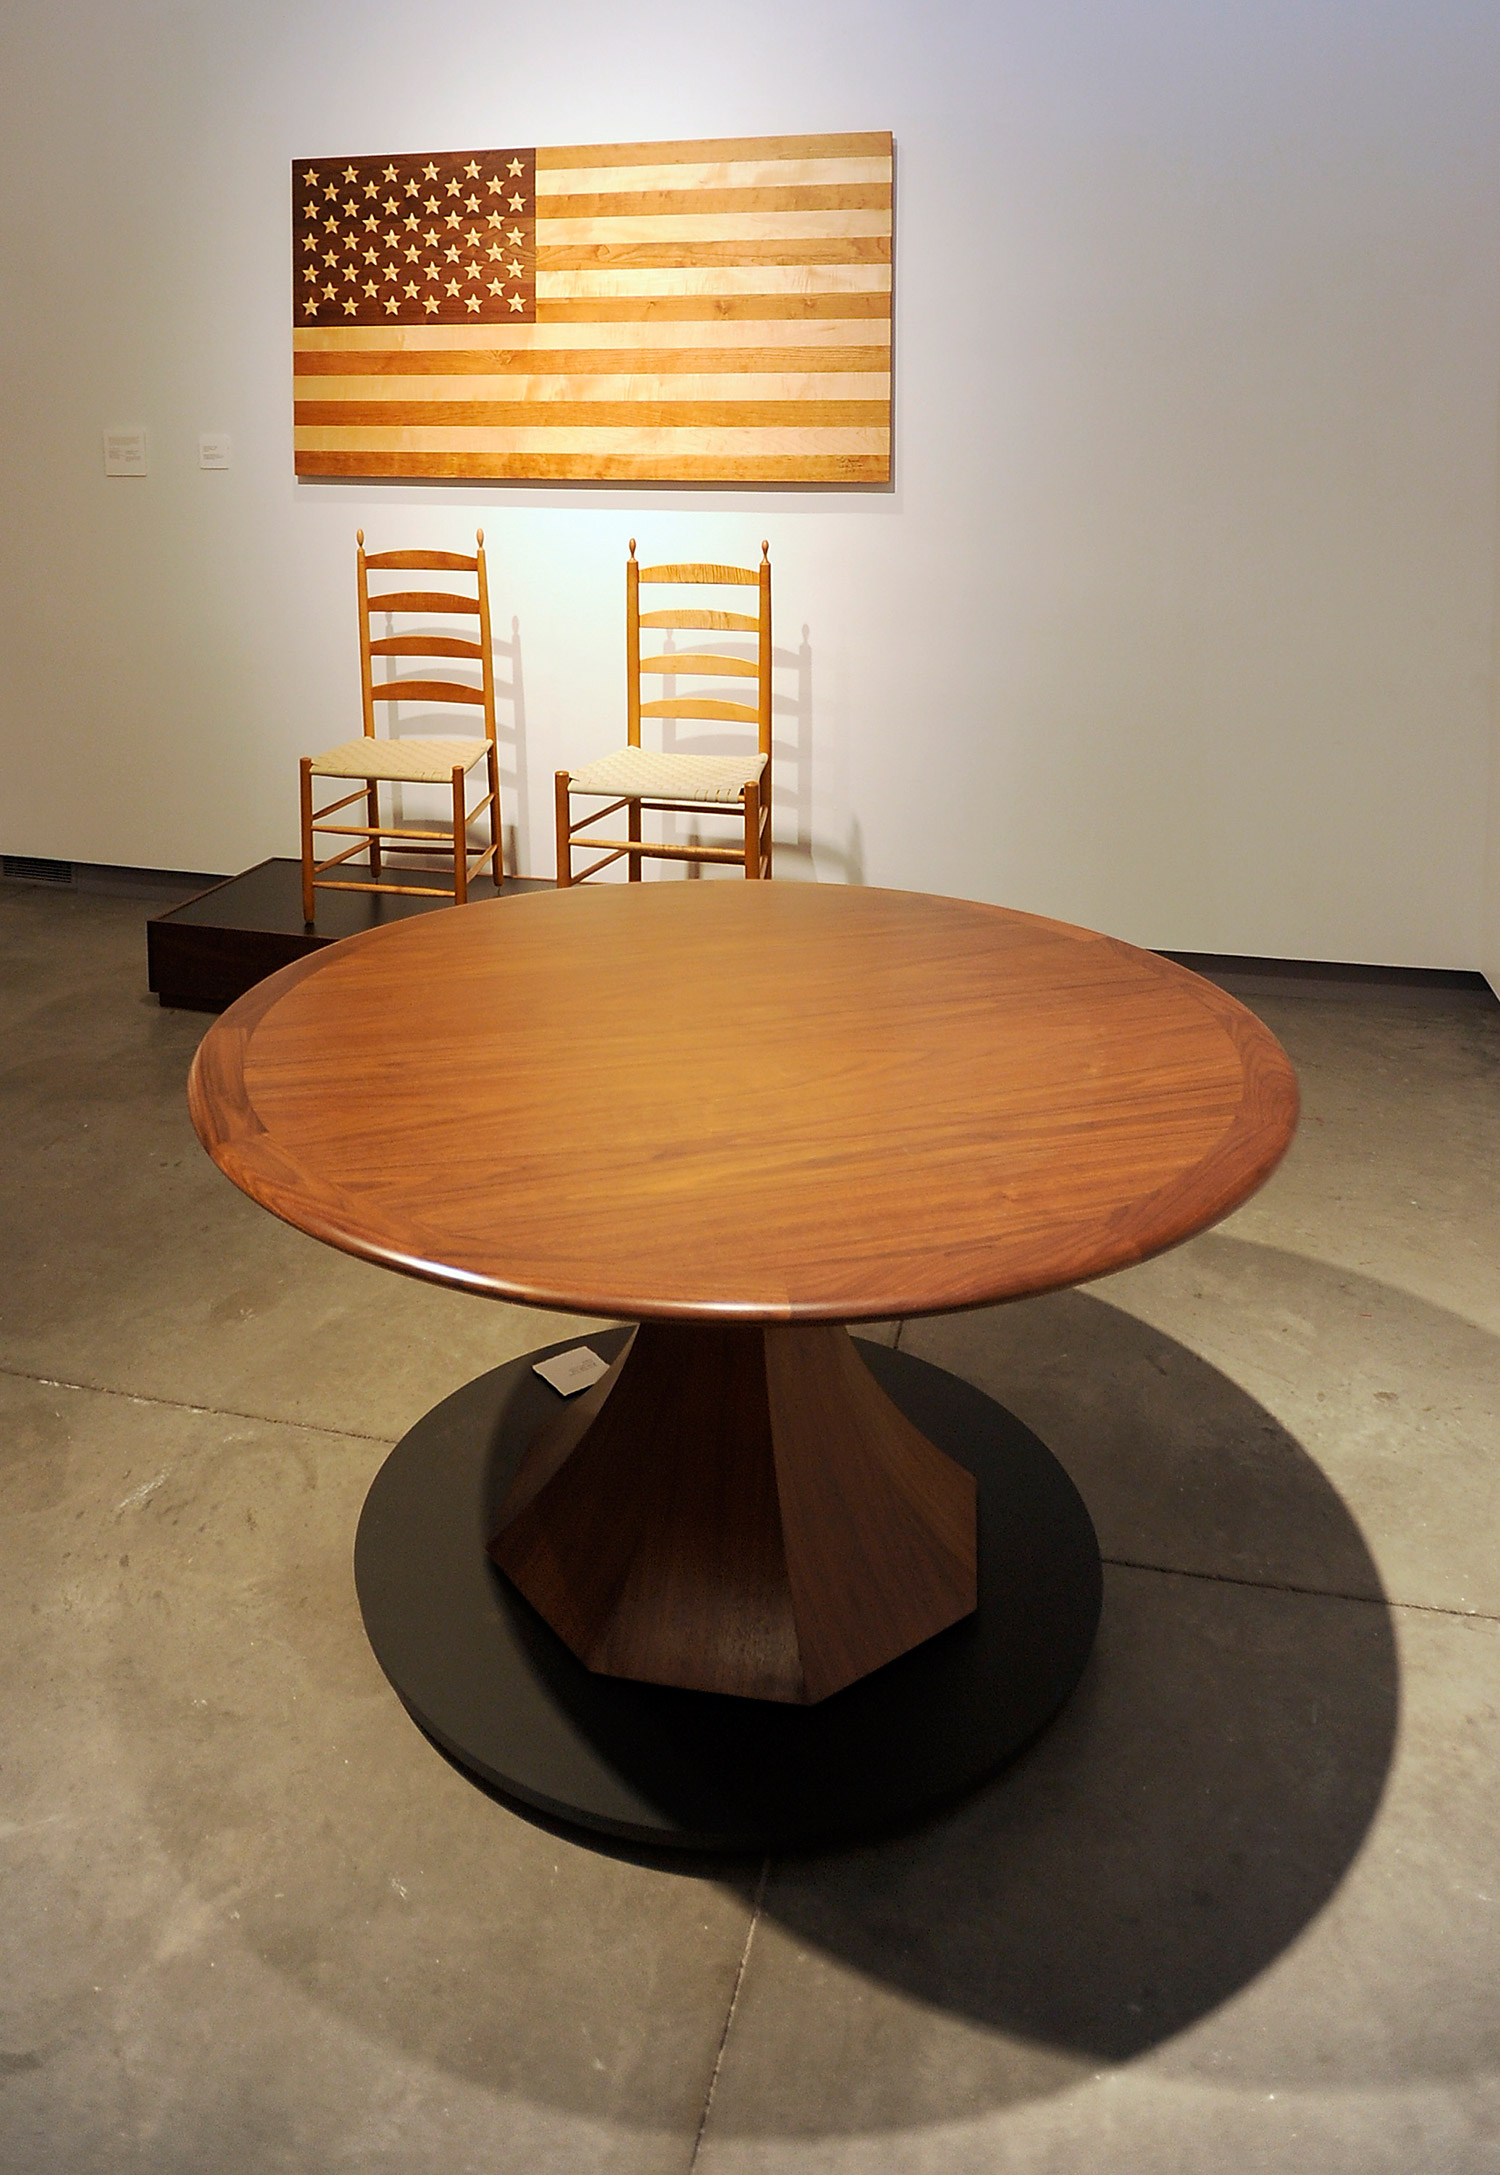 Thos Moser Creations On Display At Meca Press Herald